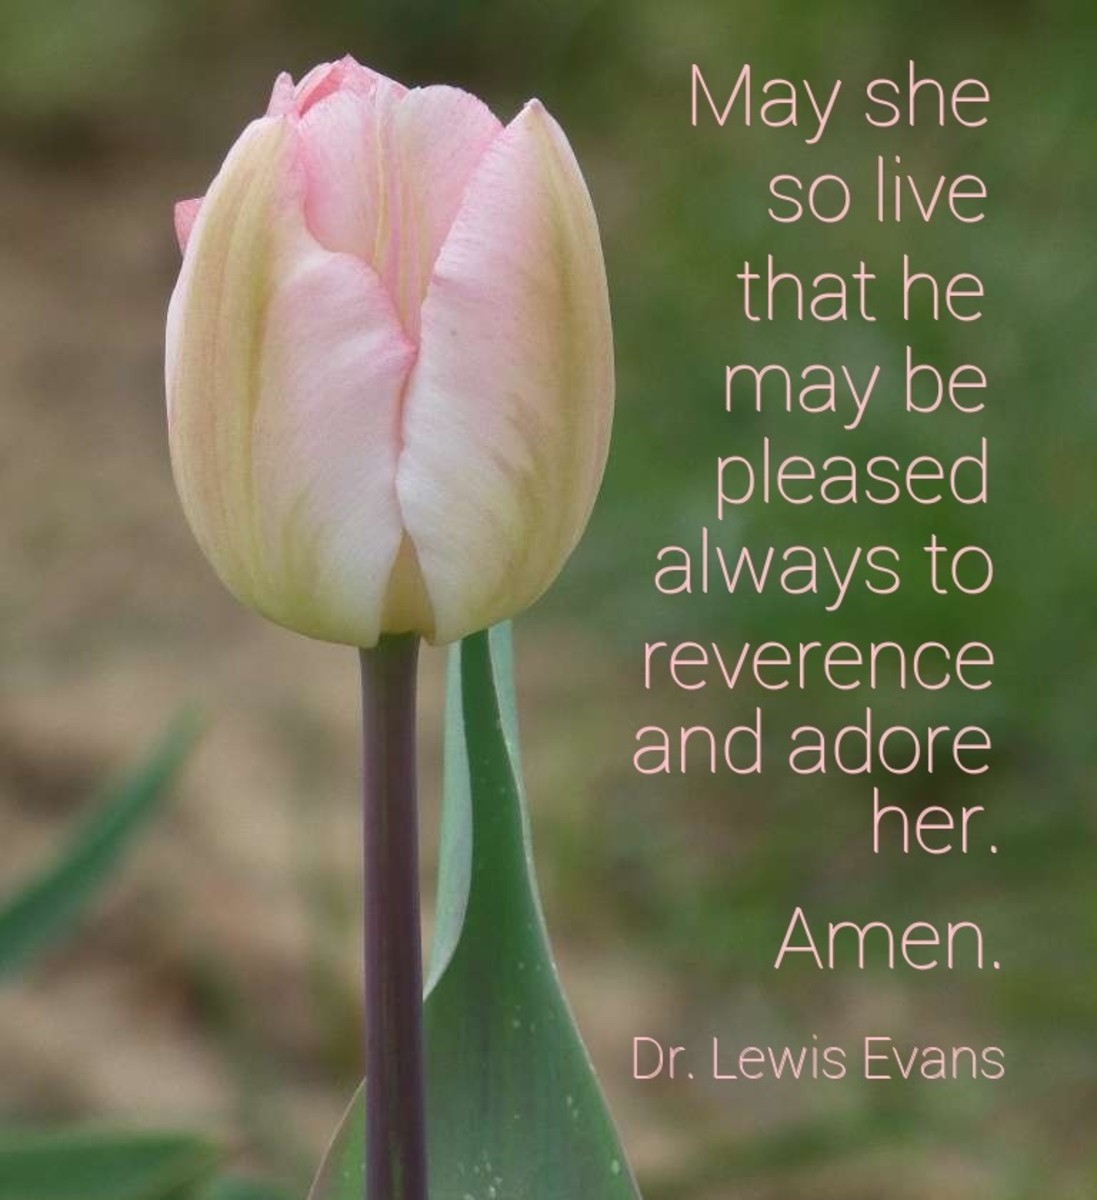 May she so live that he may be pleased always to reverence and adore her. Amen.